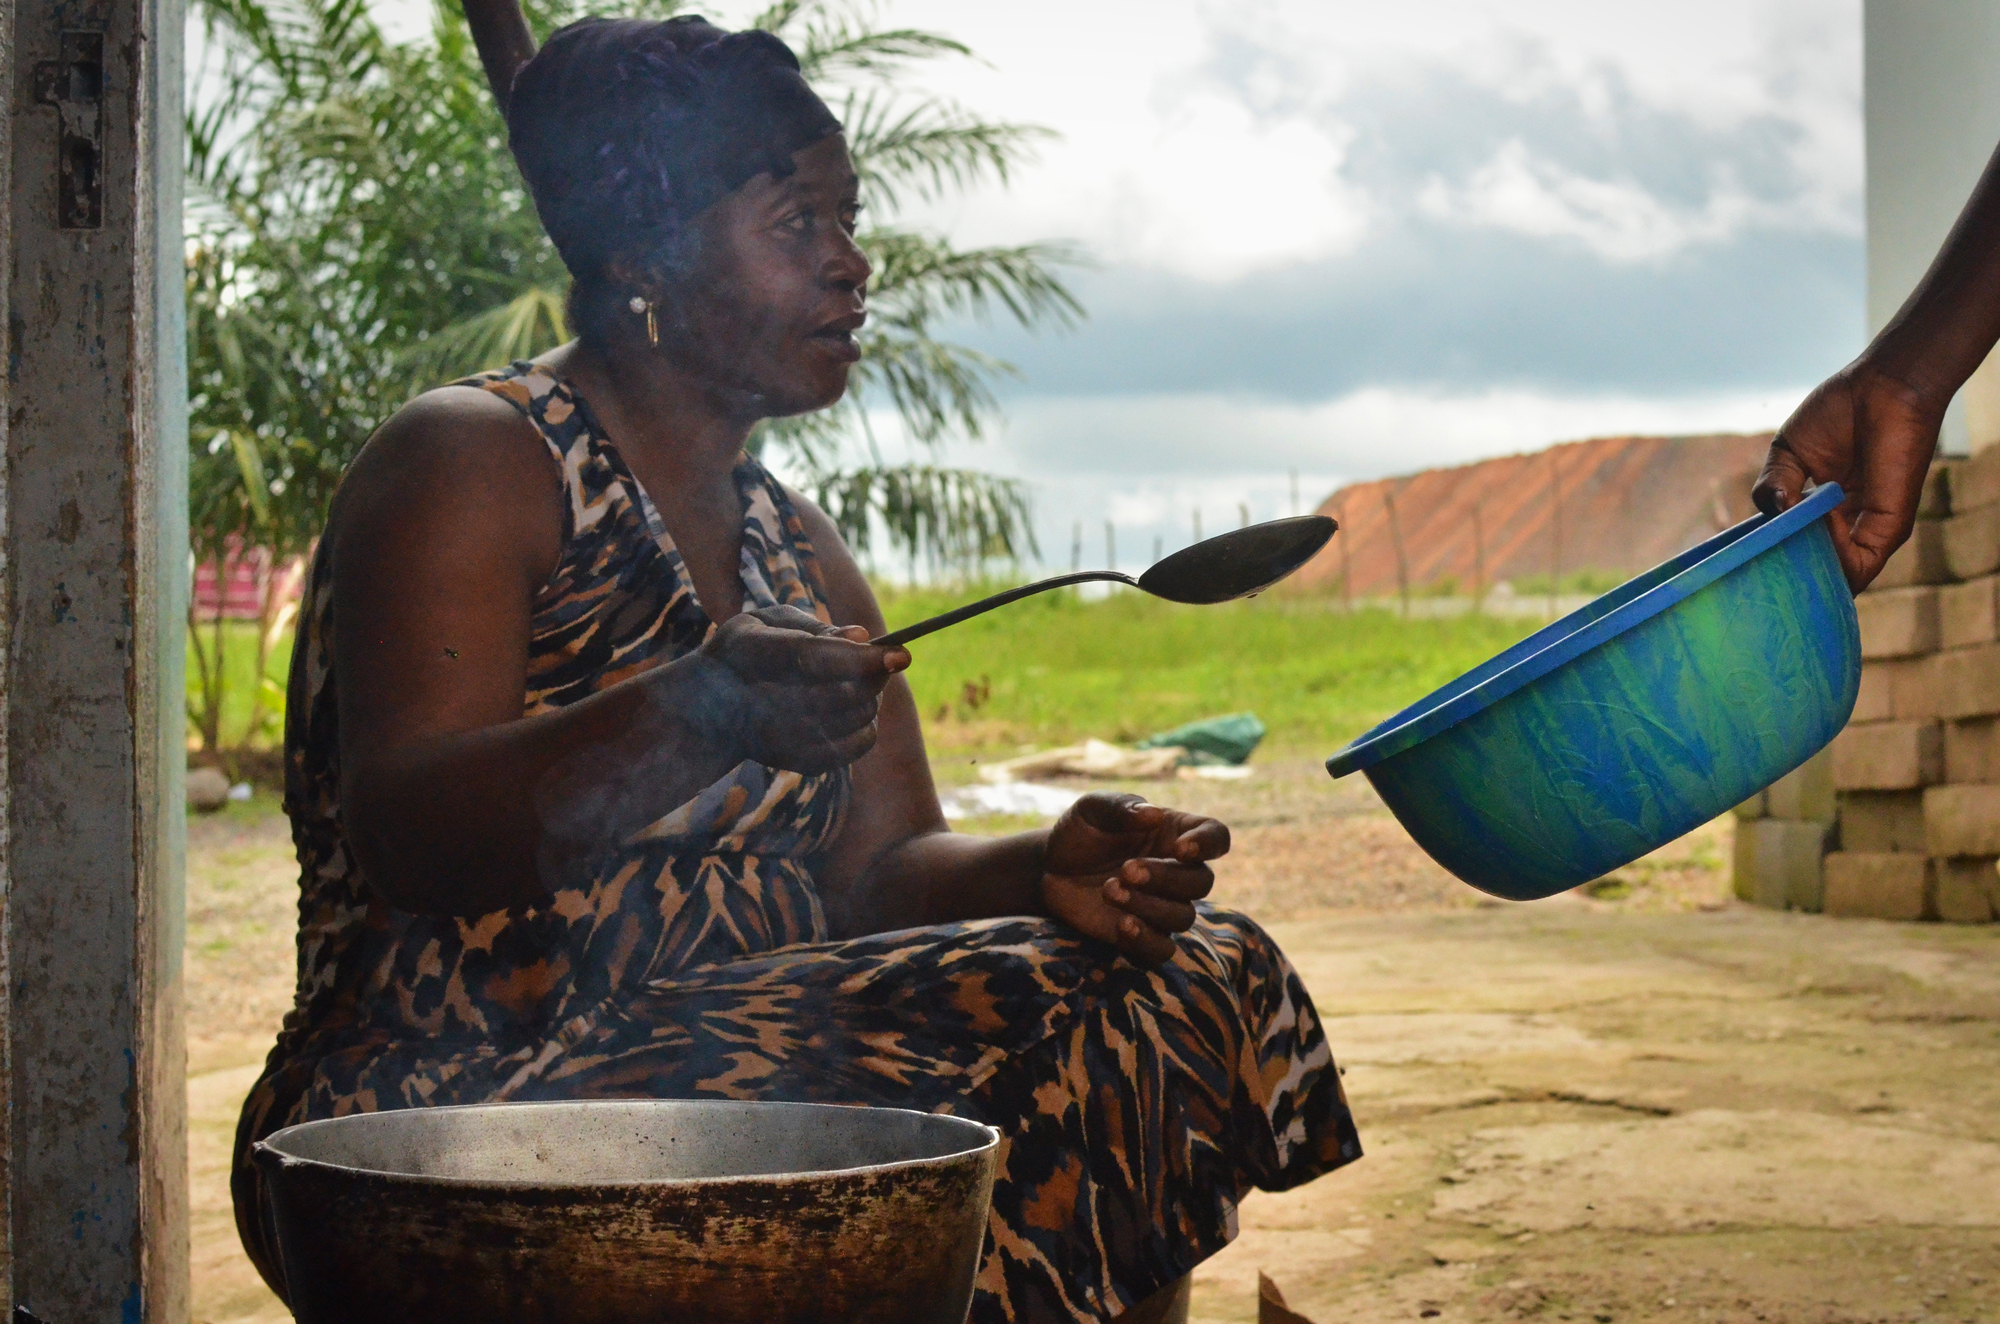 Jariatu Kamara, the wife of a local chief, was one of several people moved to the resettlement site in 2010 after the mine's safety zone was expanded to 500 meters. She says that the new house is a welcome improvement to their old property.